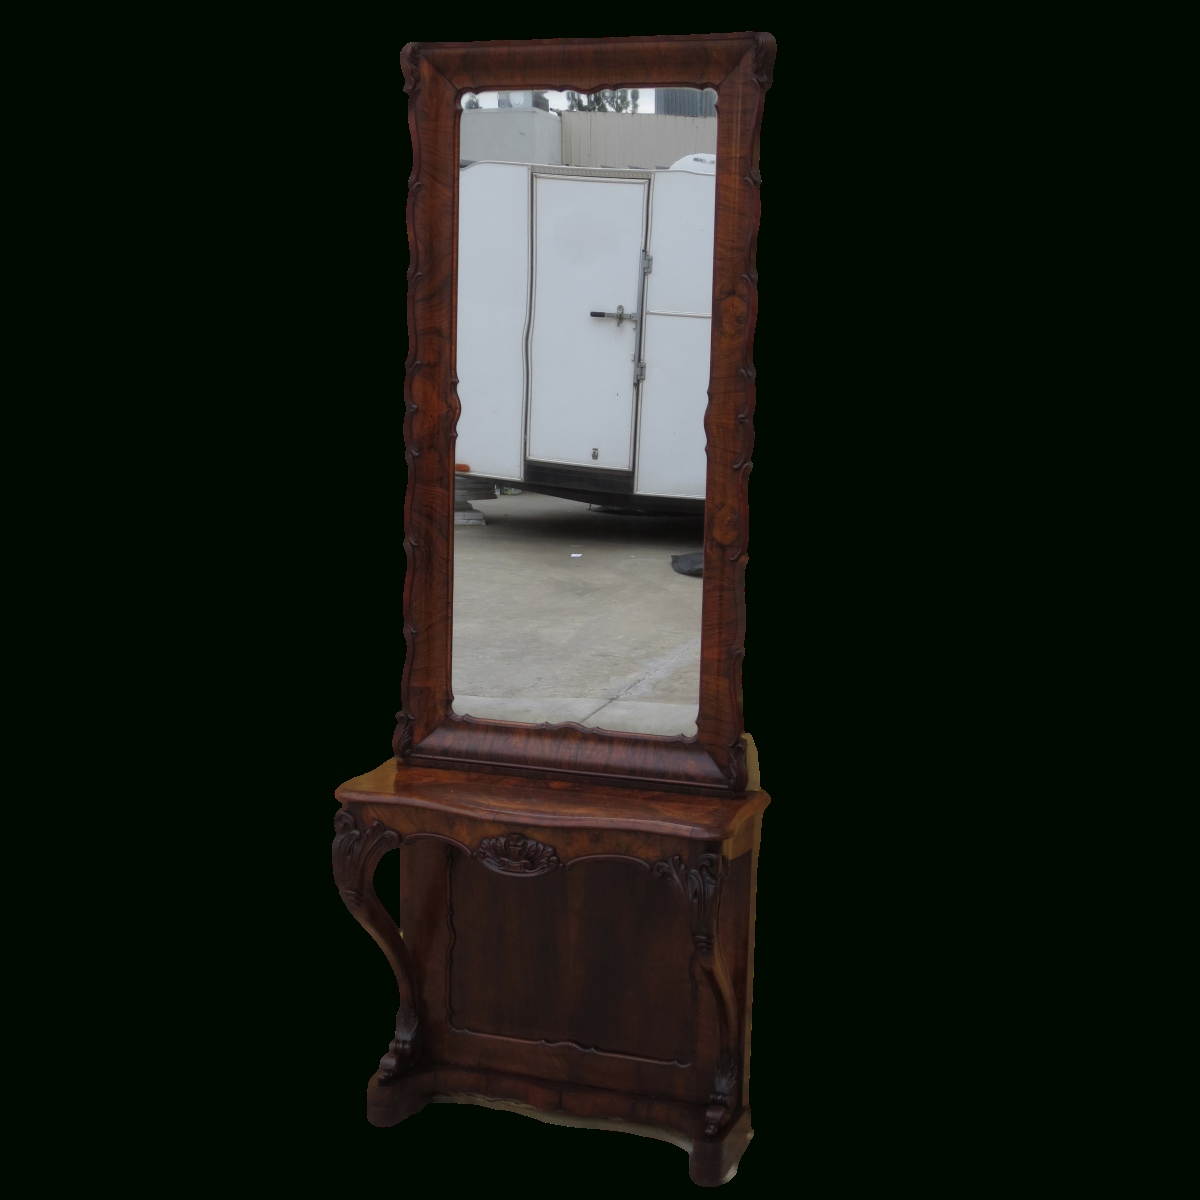 Antique Mirrors, Vintage Mirrors, Antique Wall Mirrors, And French In Antique Mirrors Cheap (Image 4 of 20)